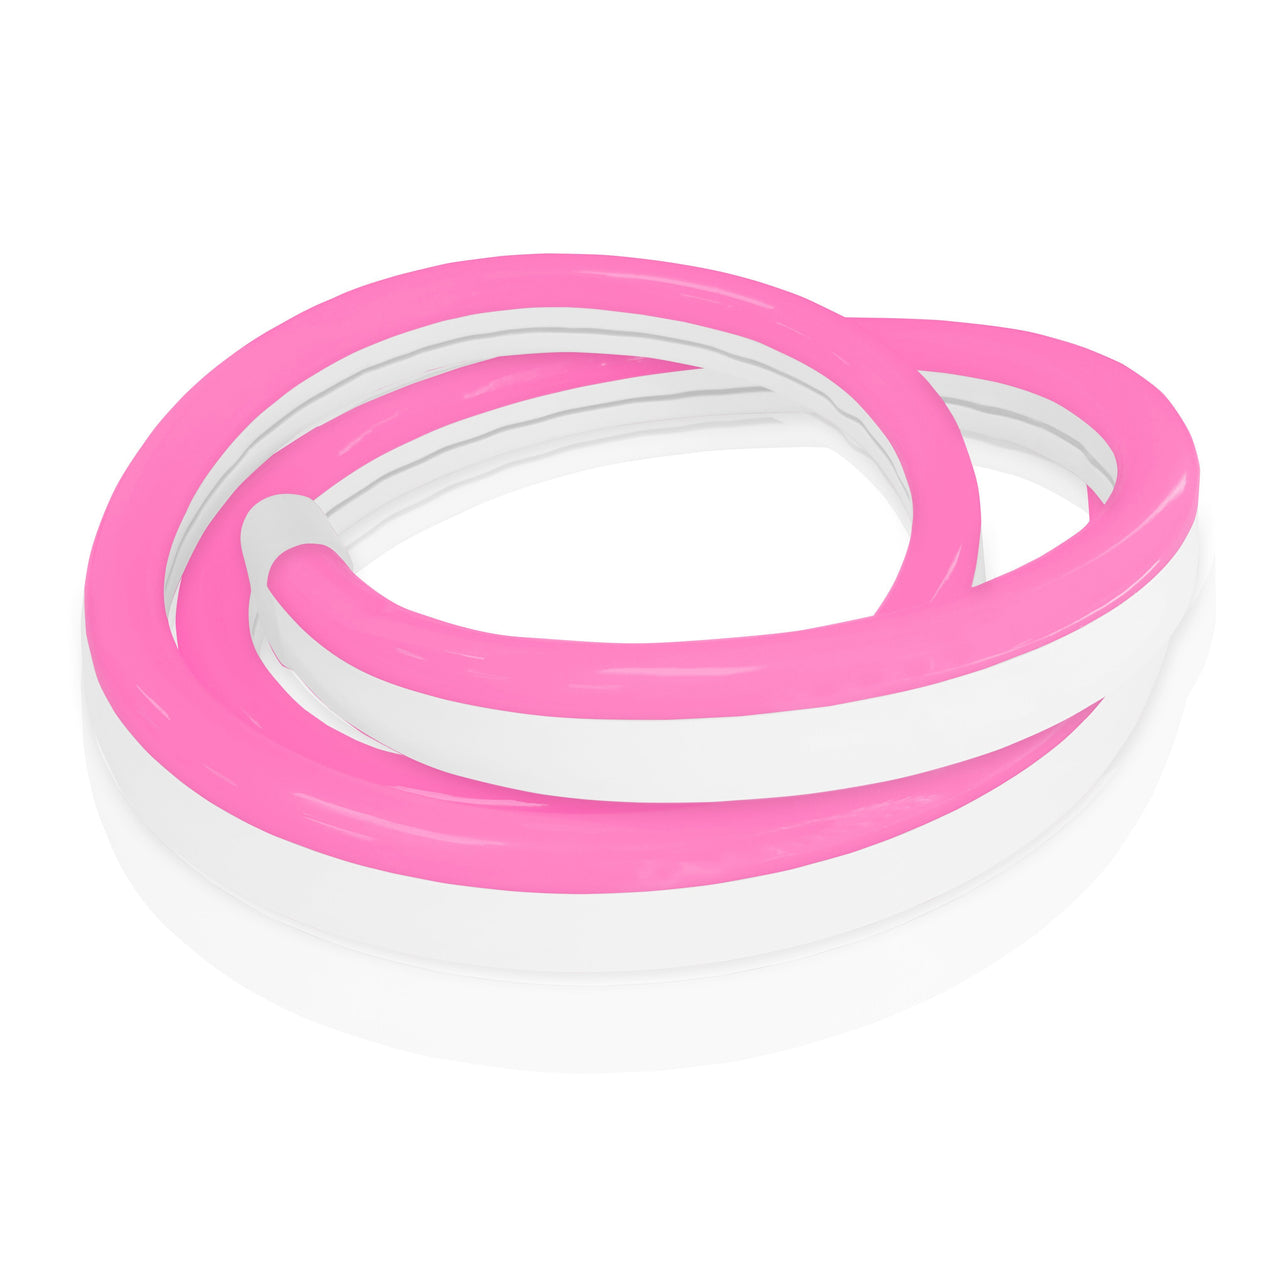 Neon LED Strip Light | PINK | Standard Size Neon-LED Series. Standard Size Lumilum